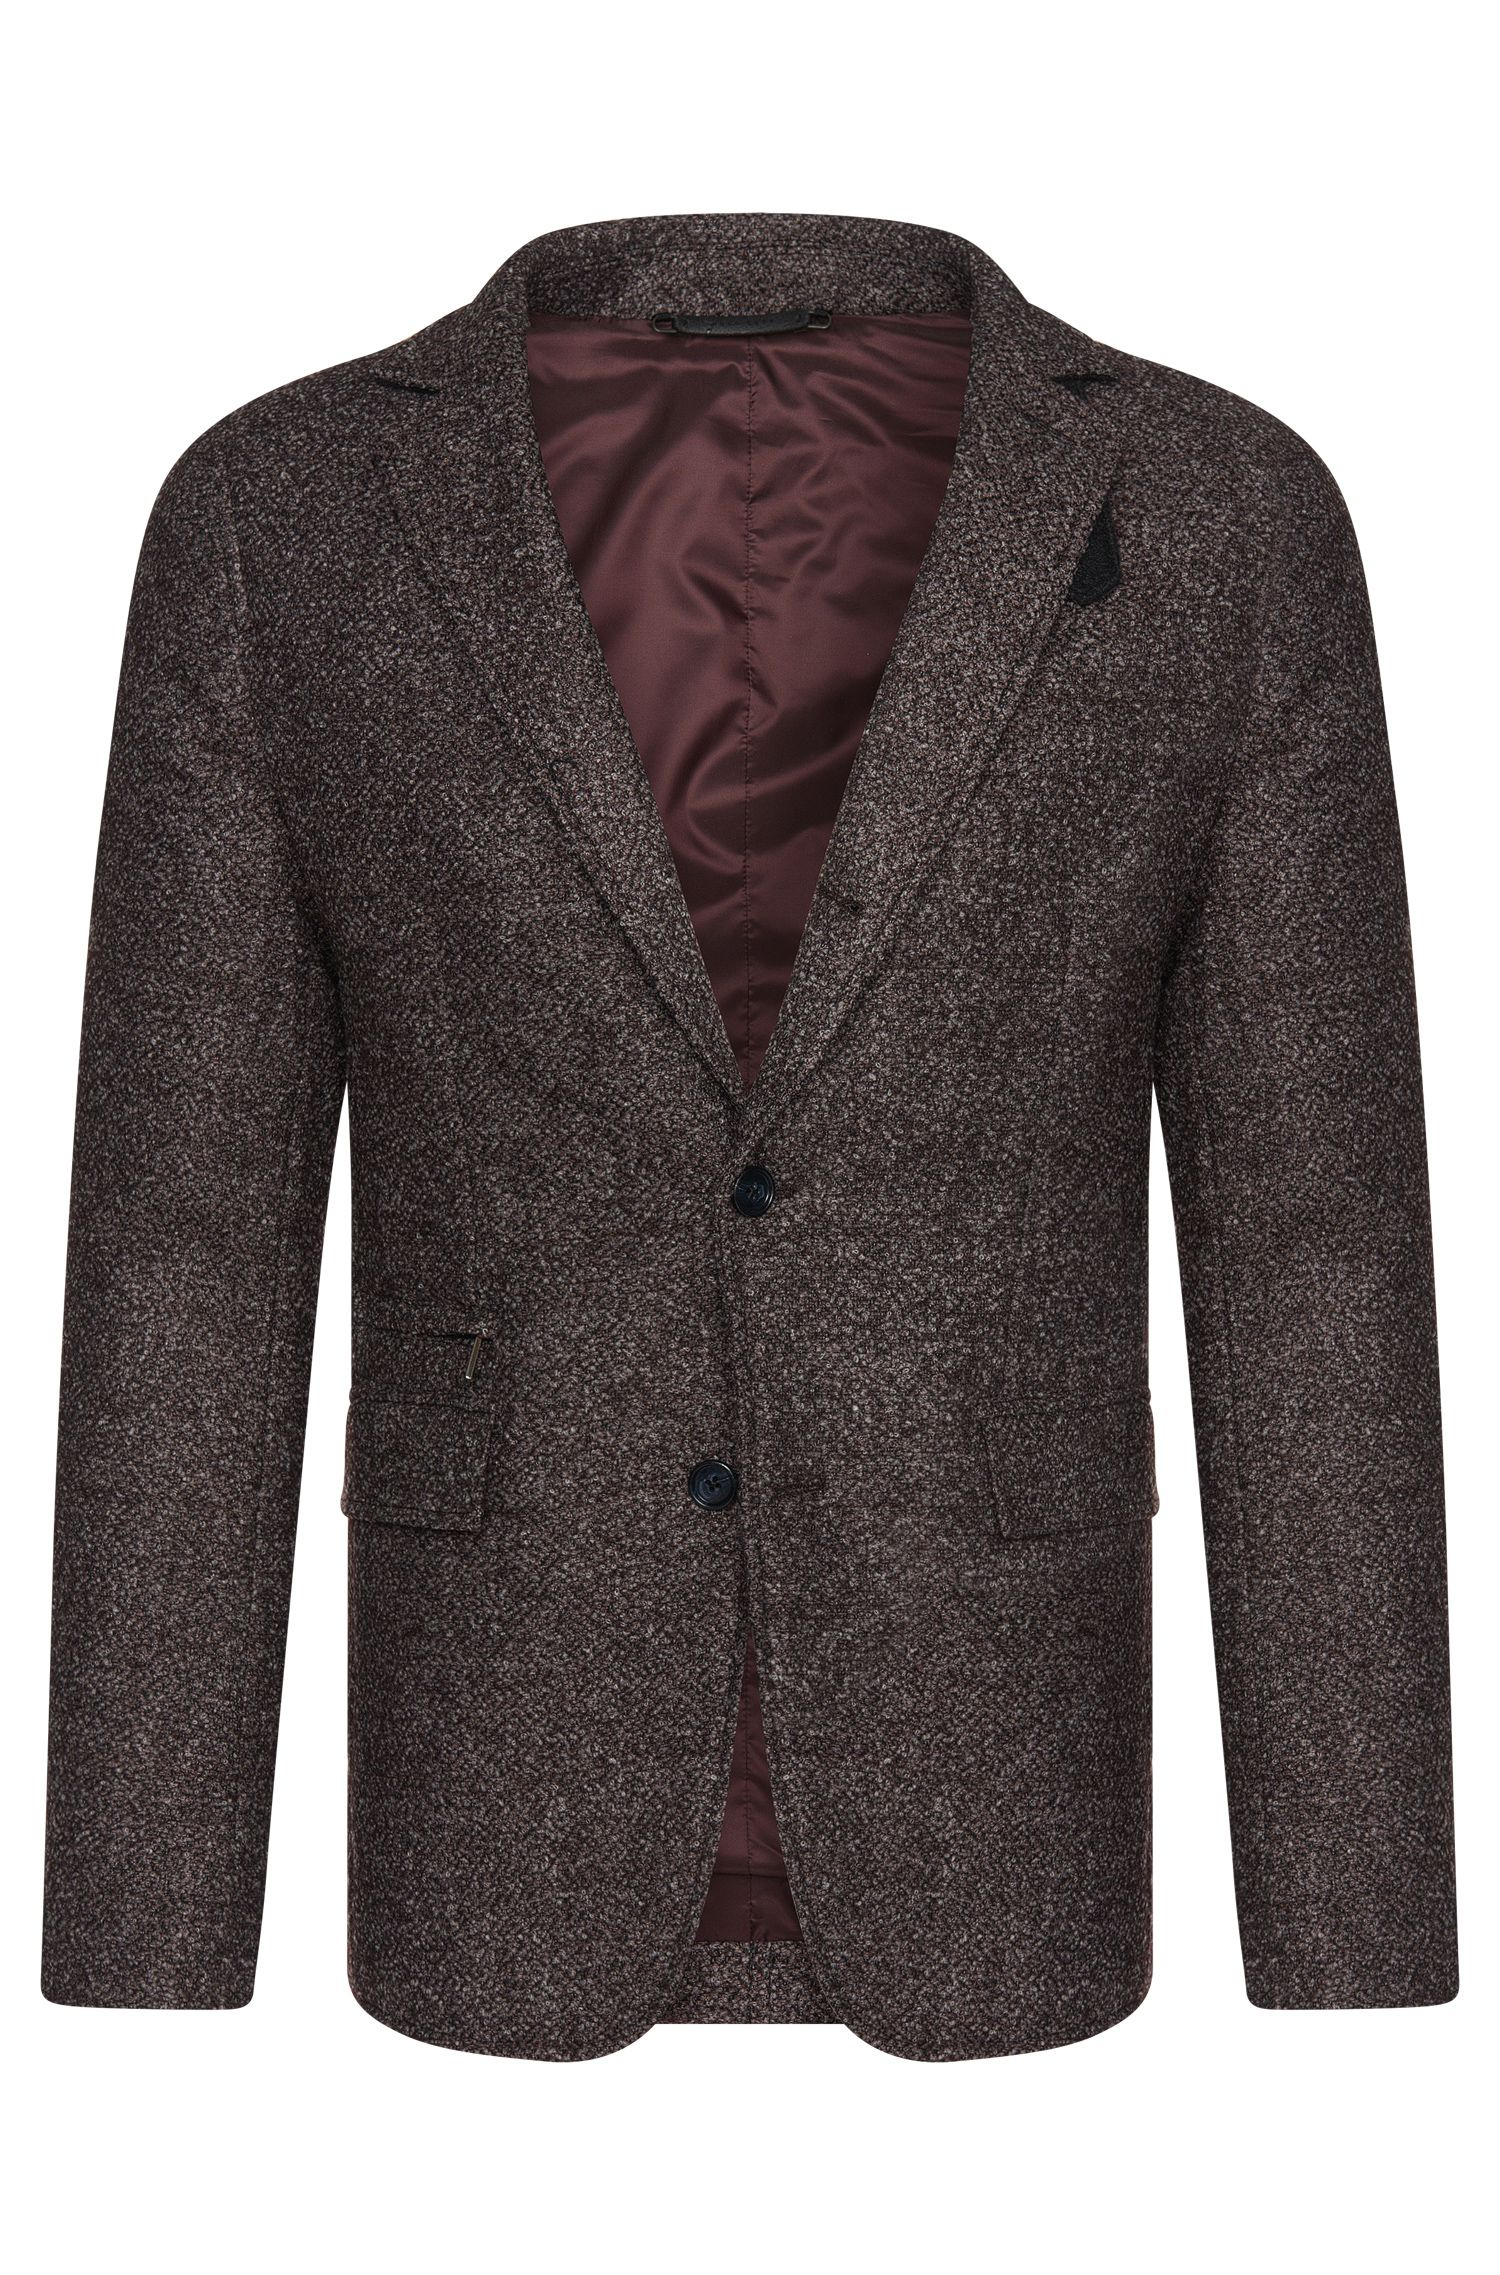 Veste de costume Slim Fit Tailored en laine mélangée à la finition bouclette : « T-Niklaas »